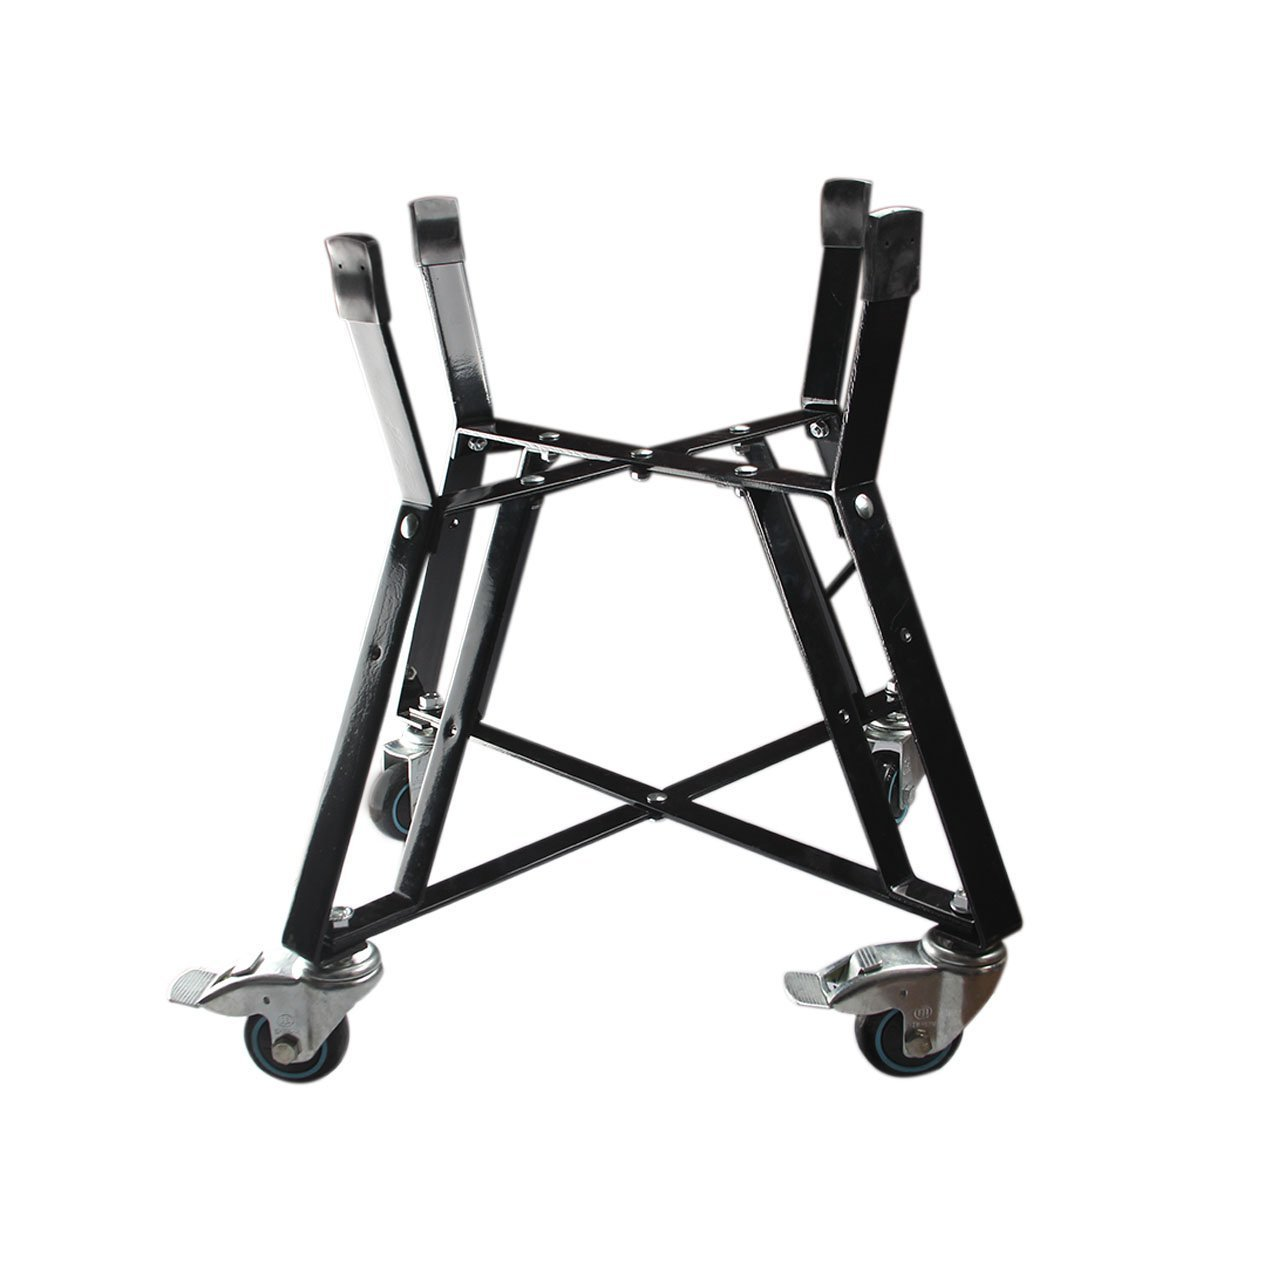 Rolling Cart Big Green Egg Accessories,BBQ Rolling Nest With Heavy Duty Locking Caster Wheels Powder Coated Steel Rolling Outdoor Cart For Large Big Green Egg Kamado Classic Joe Grill Stand Cooking